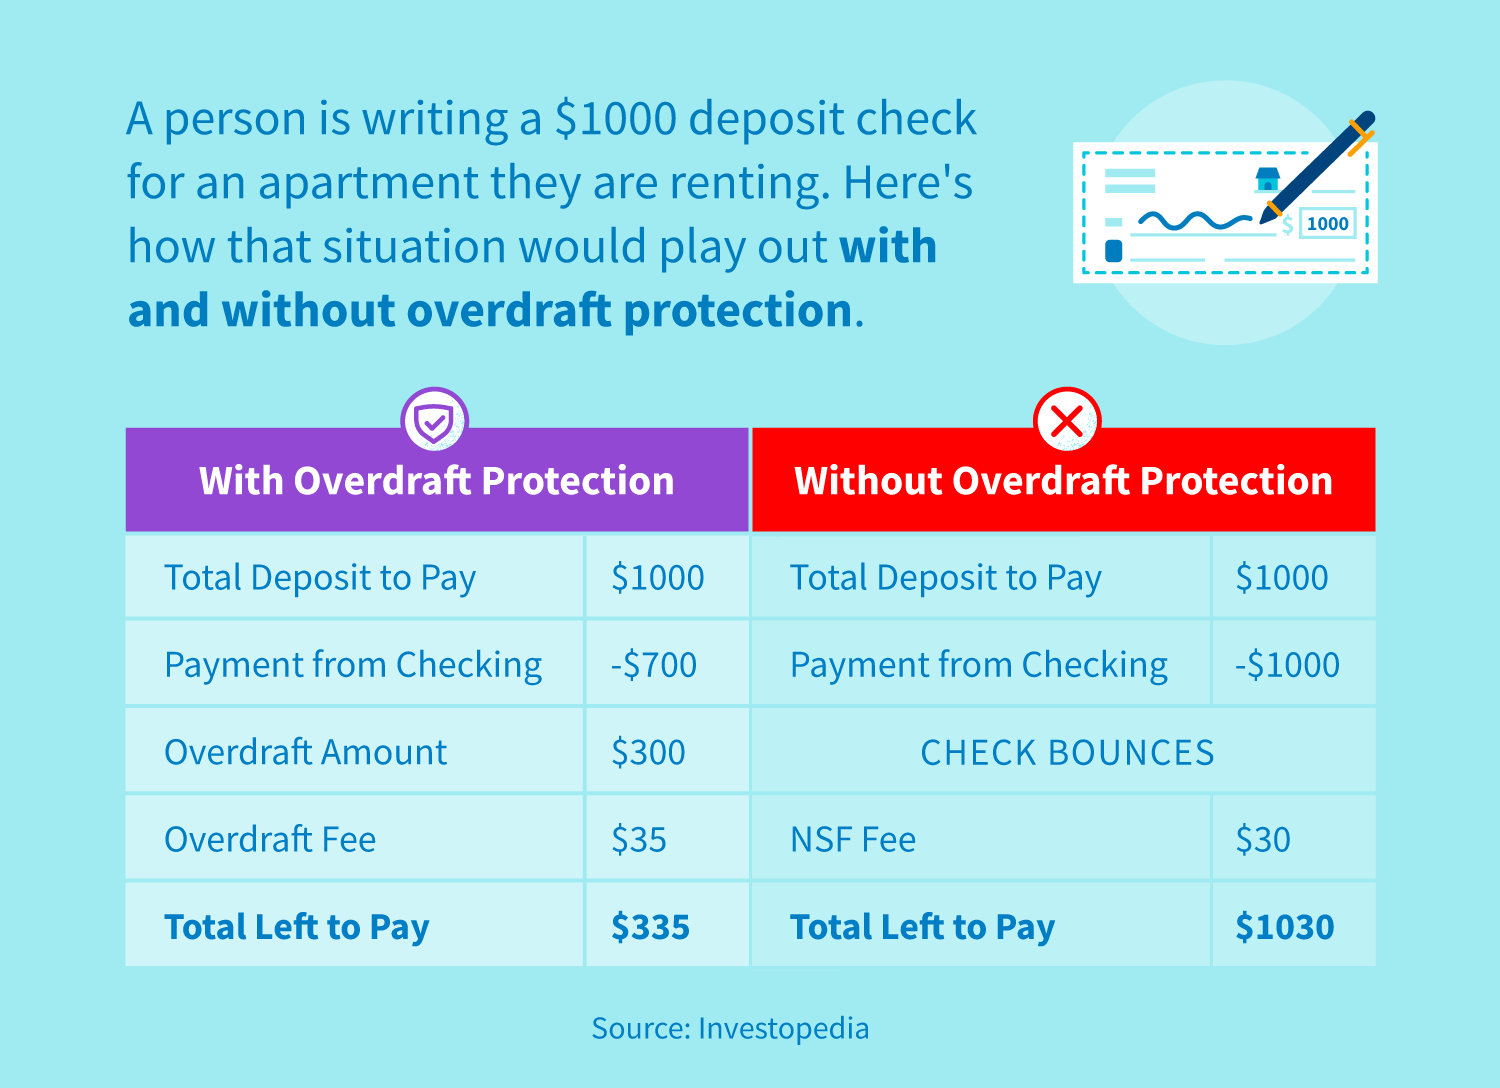 Comparing experiences with overdraft protection without overdraft protection.